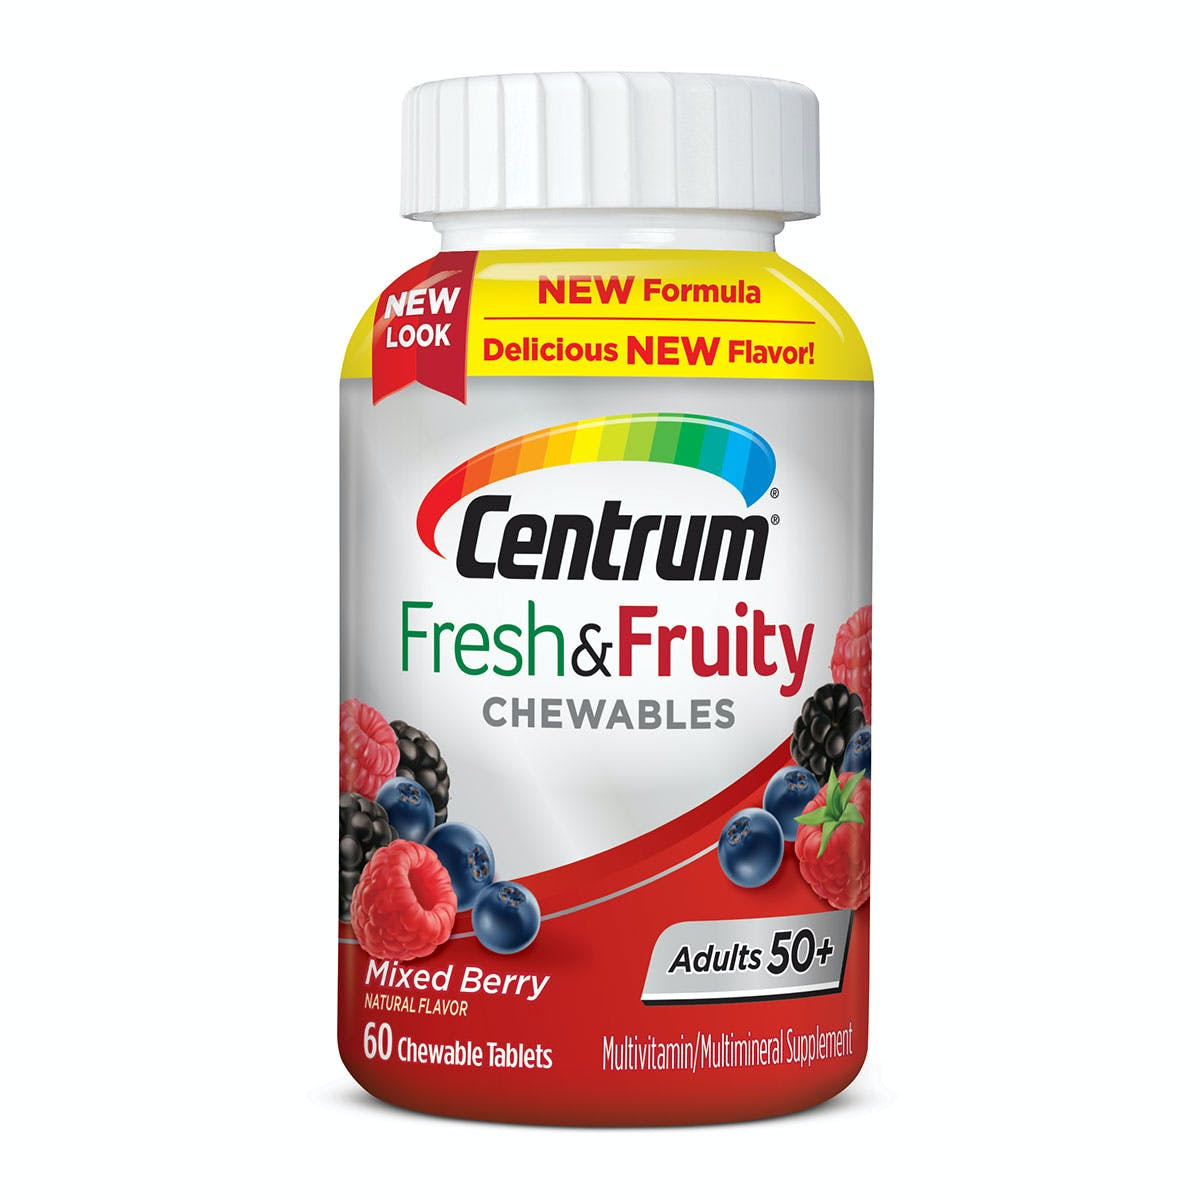 Bottle of Centrum Fresh & Fruity Chewables Adults 50+